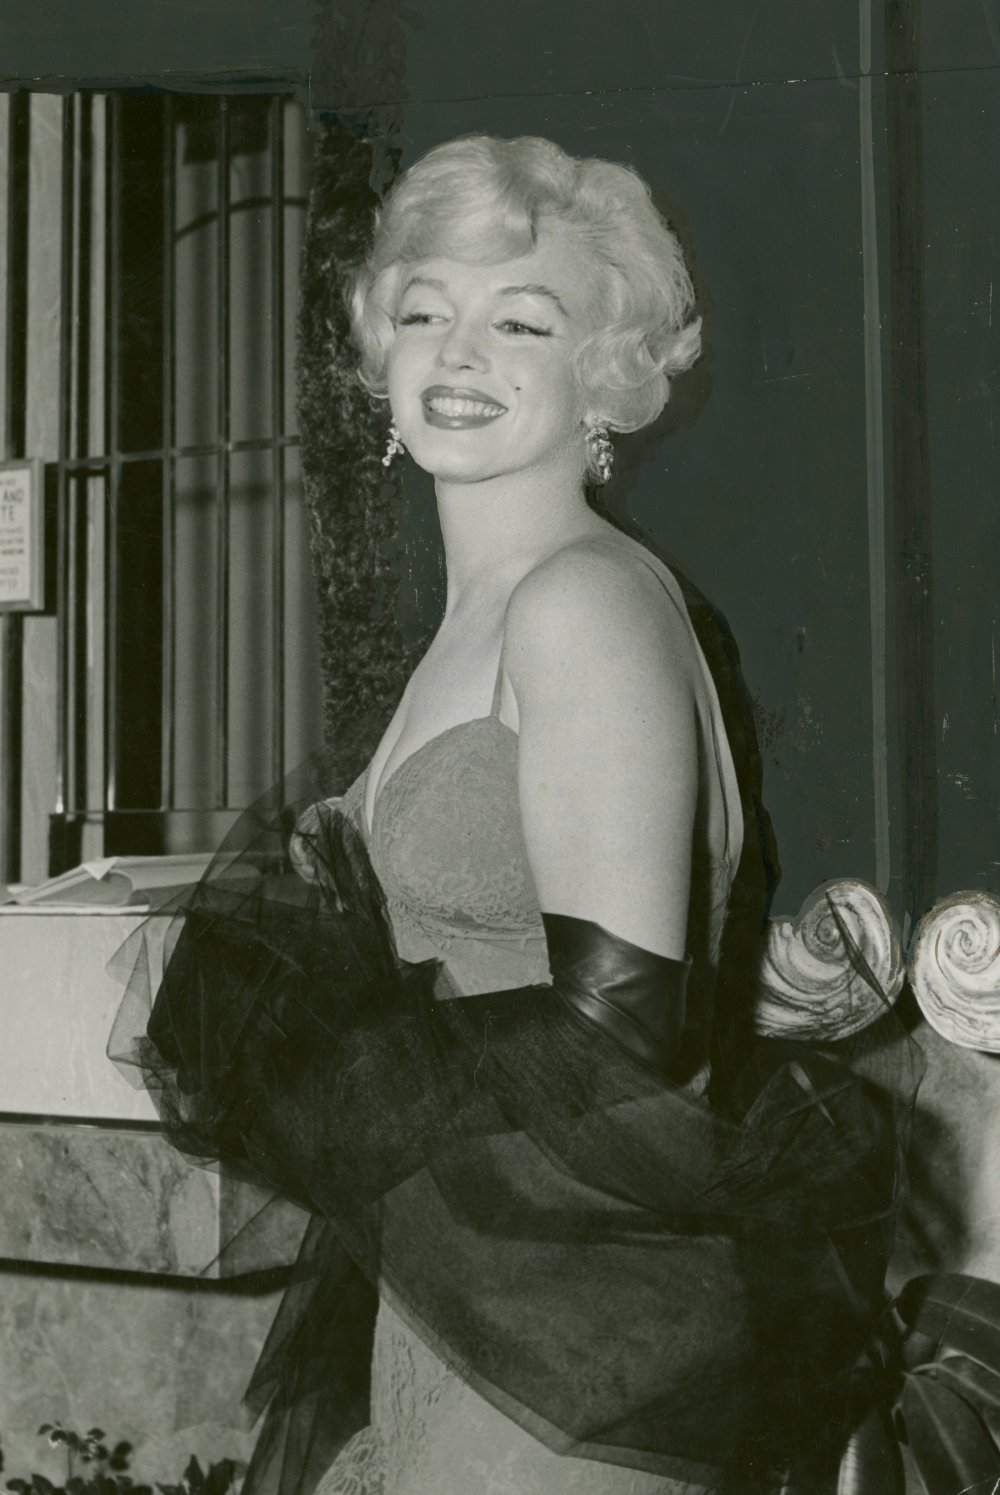 Publicity still of Marilyn Monroe attending the Hollywood premiere of Gigi in 1957